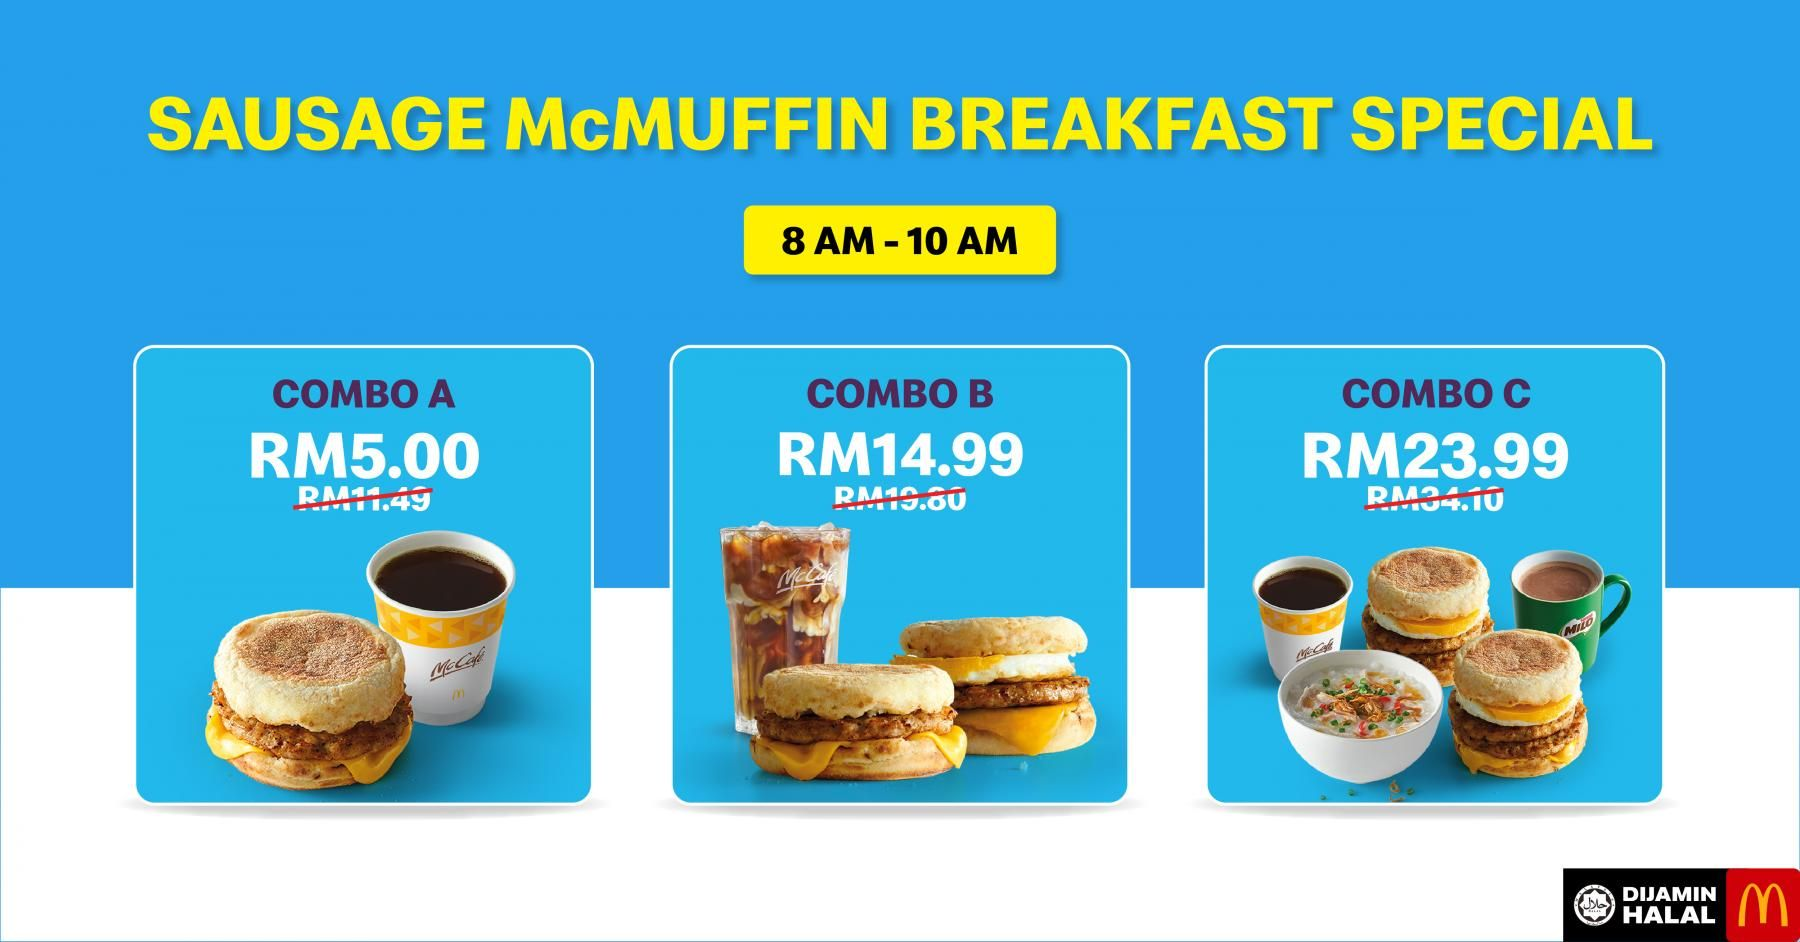 Mcdonald S Sausage Mcmuffin Breakfast Special Promotion In 2020 Breakfast Specials Sausage Mcmuffin Mcmuffin